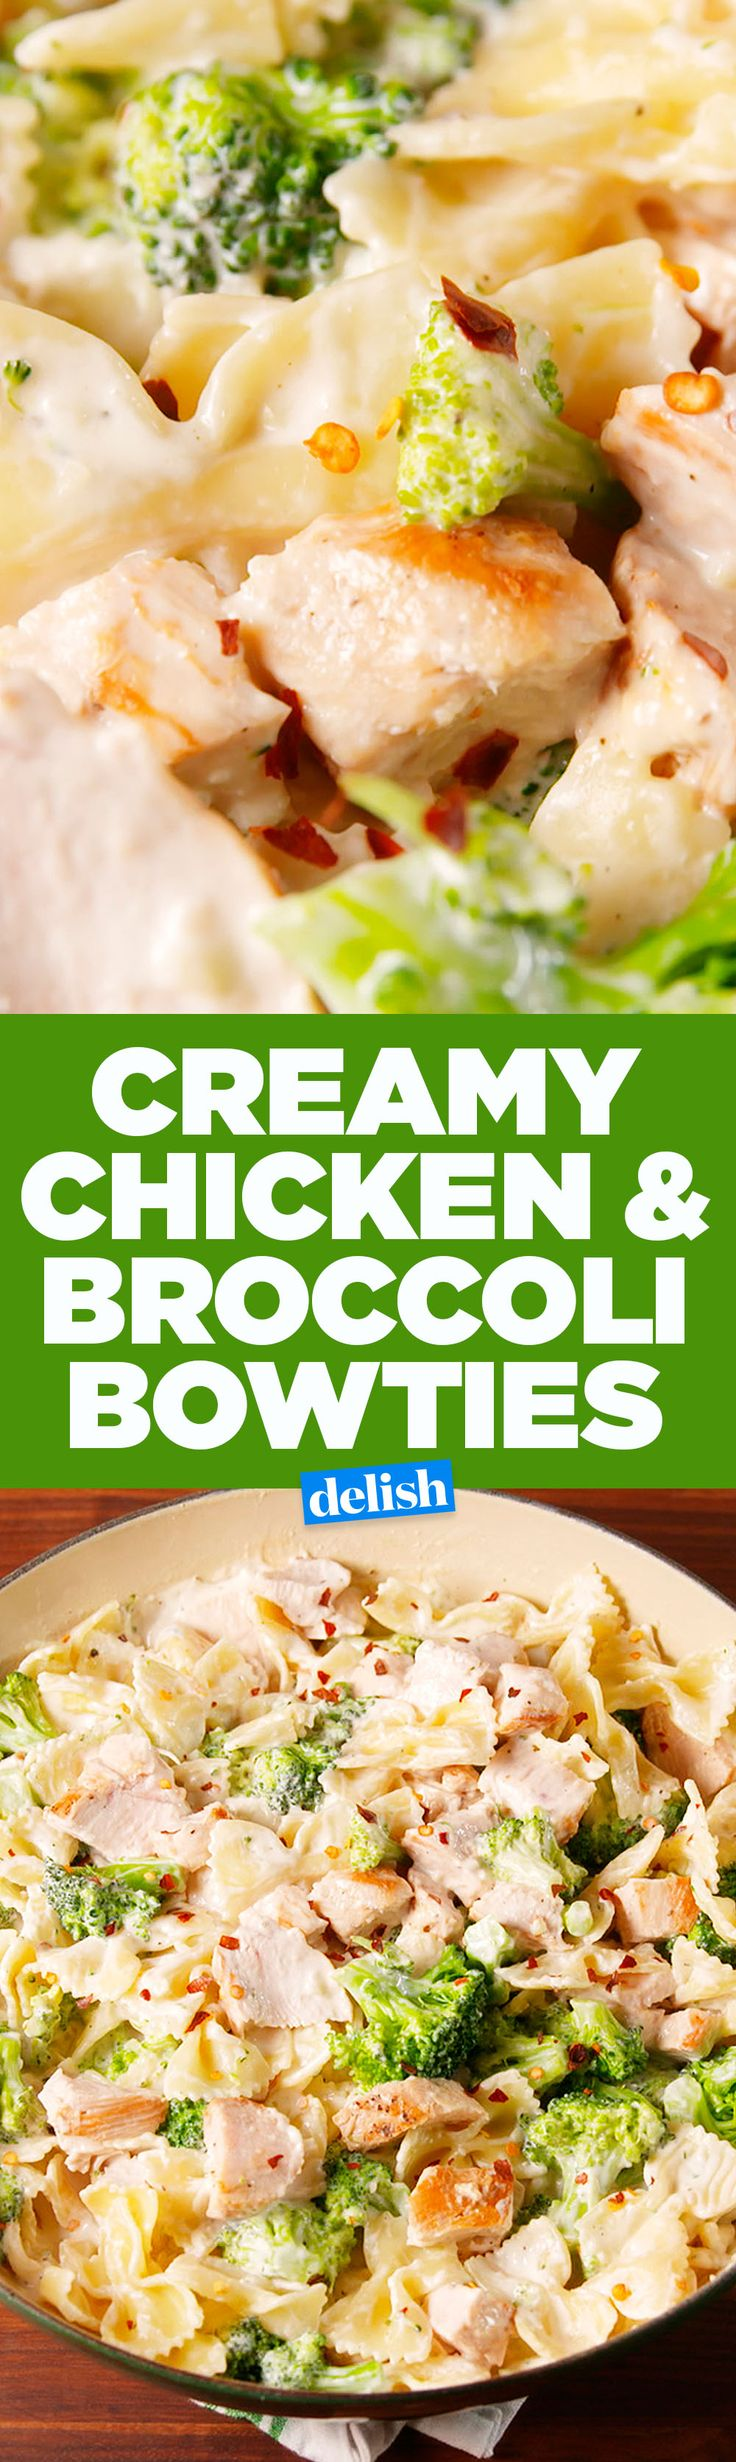 Creamy Chicken & Broccoli Bowties uses the best low-fat cooking hack. Get the recipe on Delish.com.